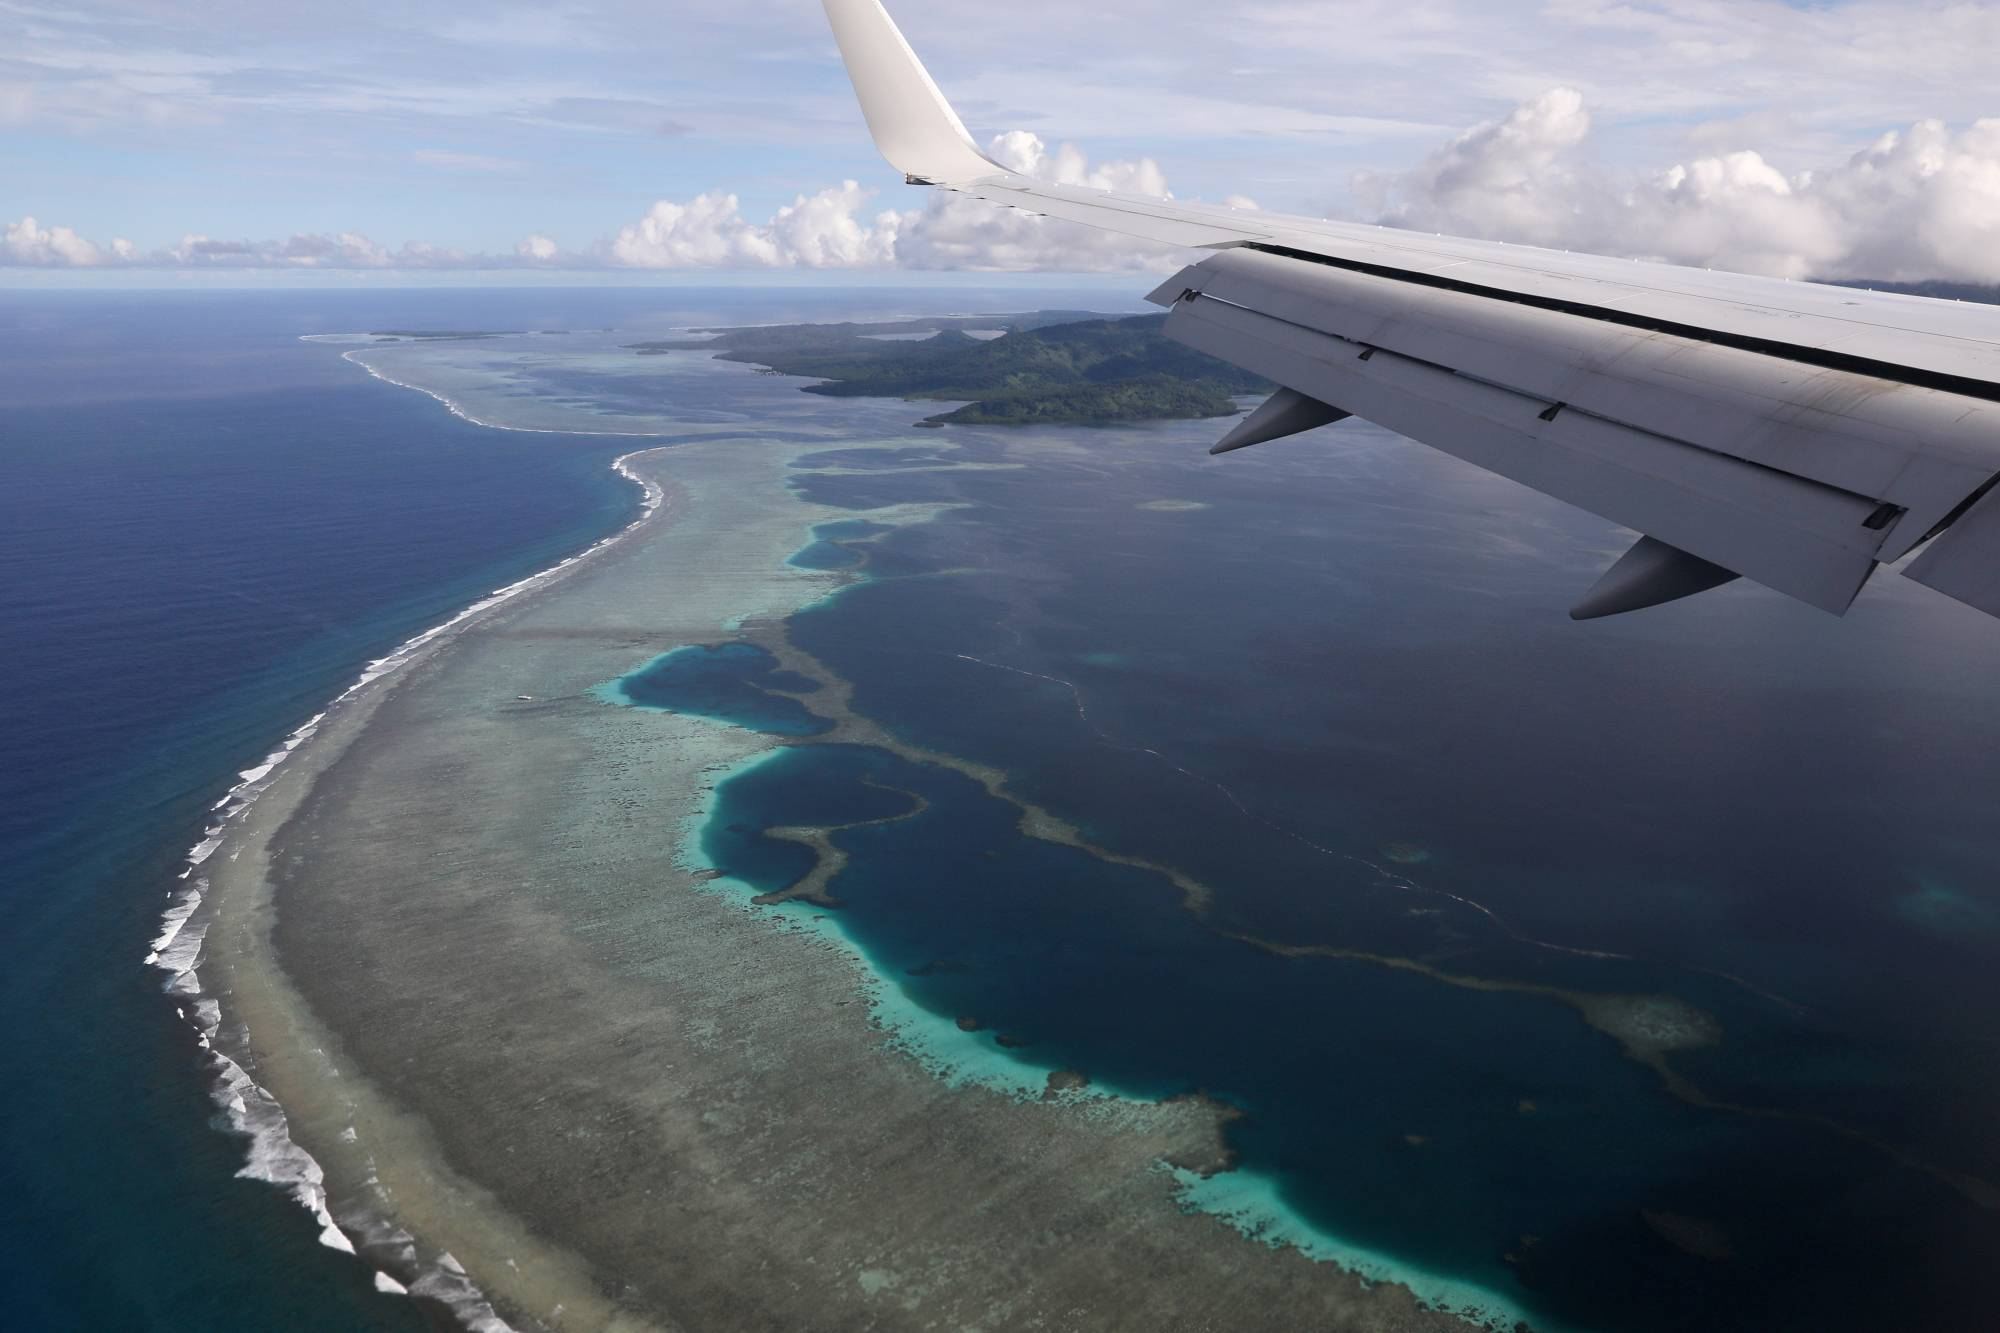 Then-U.S. Secretary of State Mike Pompeo's plane makes its landing approach near Pohnpei International Airport in Kolonia, Federated States of Micronesia, in 2019. | REUTERS